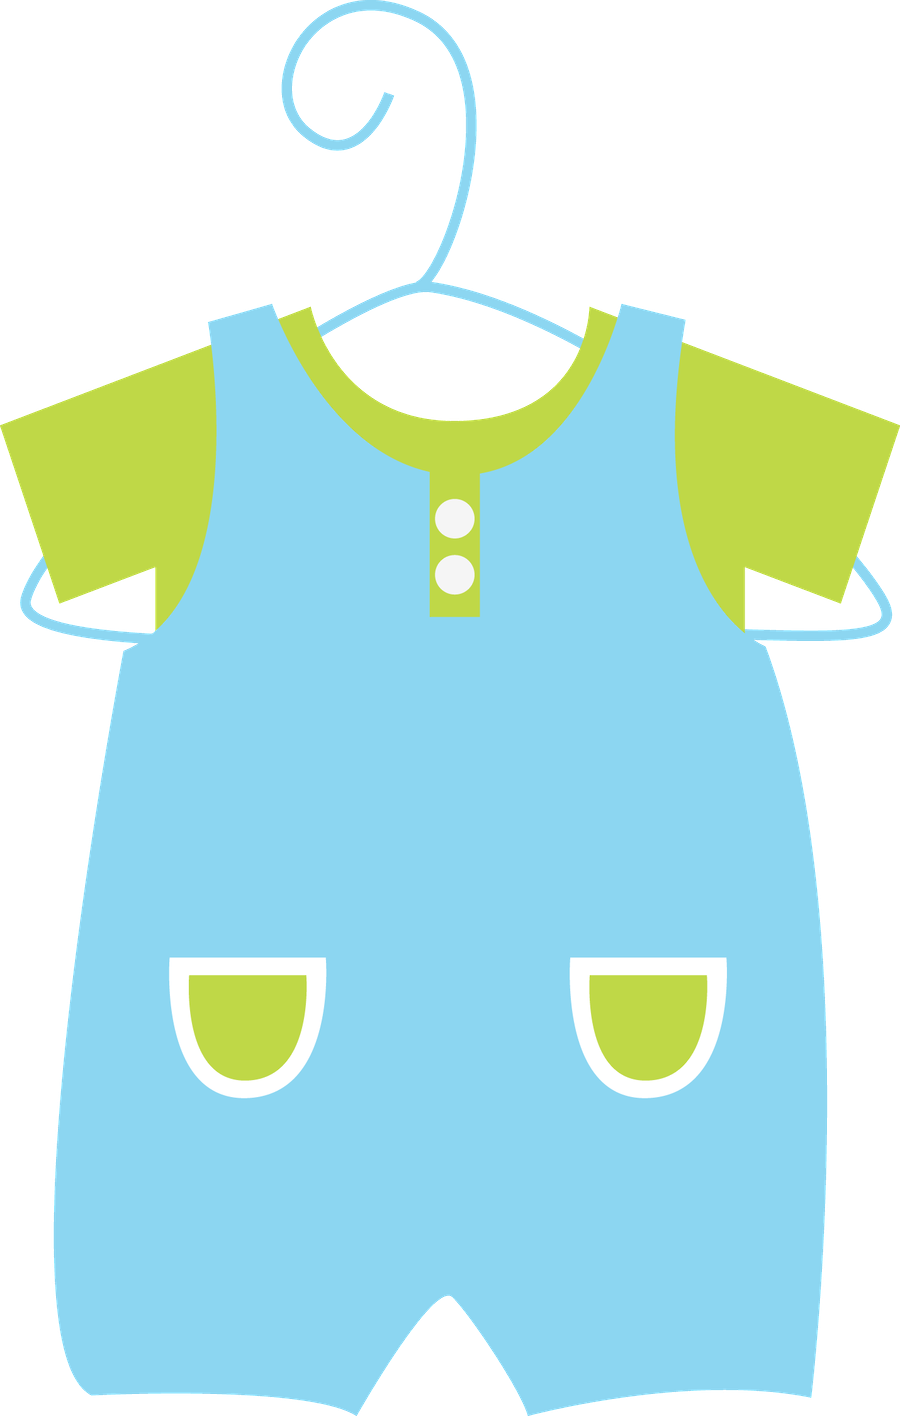 Blue clipart baby clothes Ᏸ Art this Clip boy